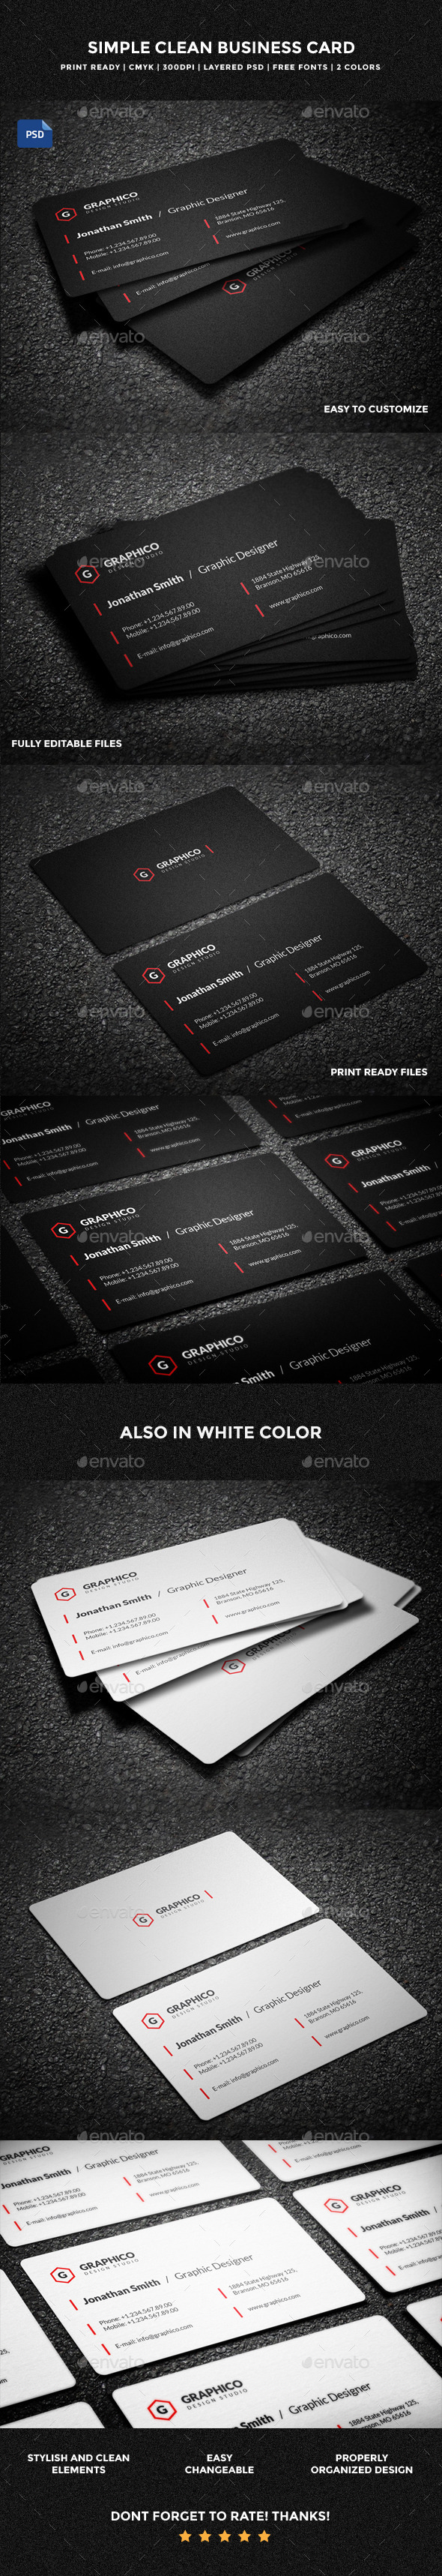 Simple Clean Business Card - 57 - Creative Business Cards